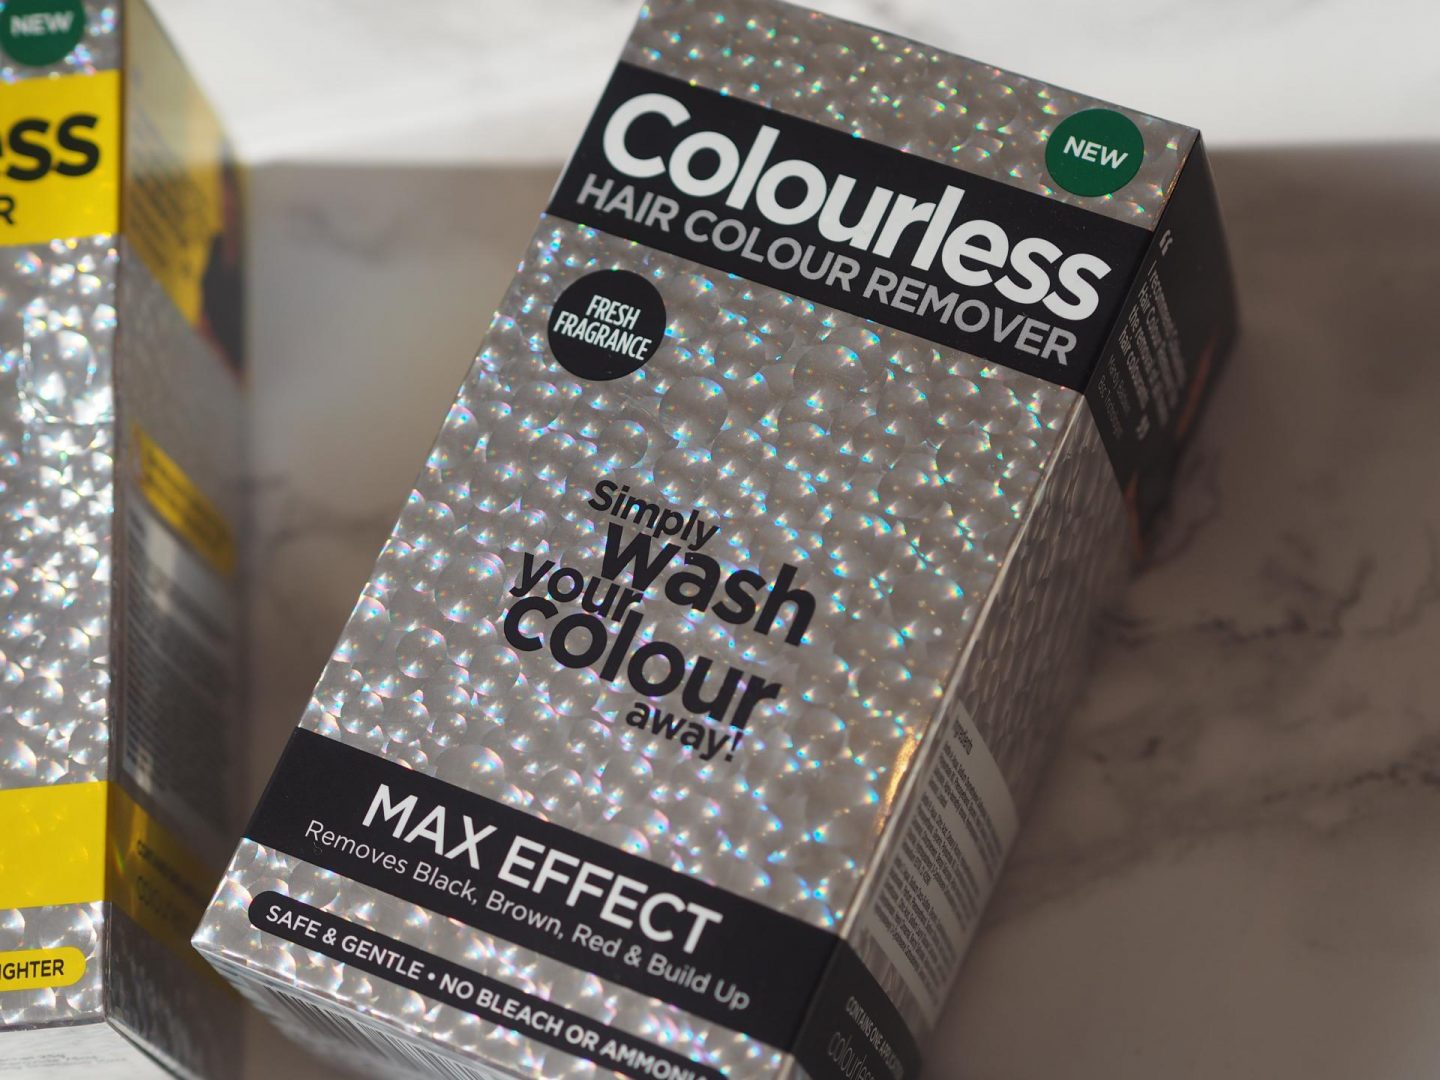 Colourless Hair Colour Remover - Product: Max Effect